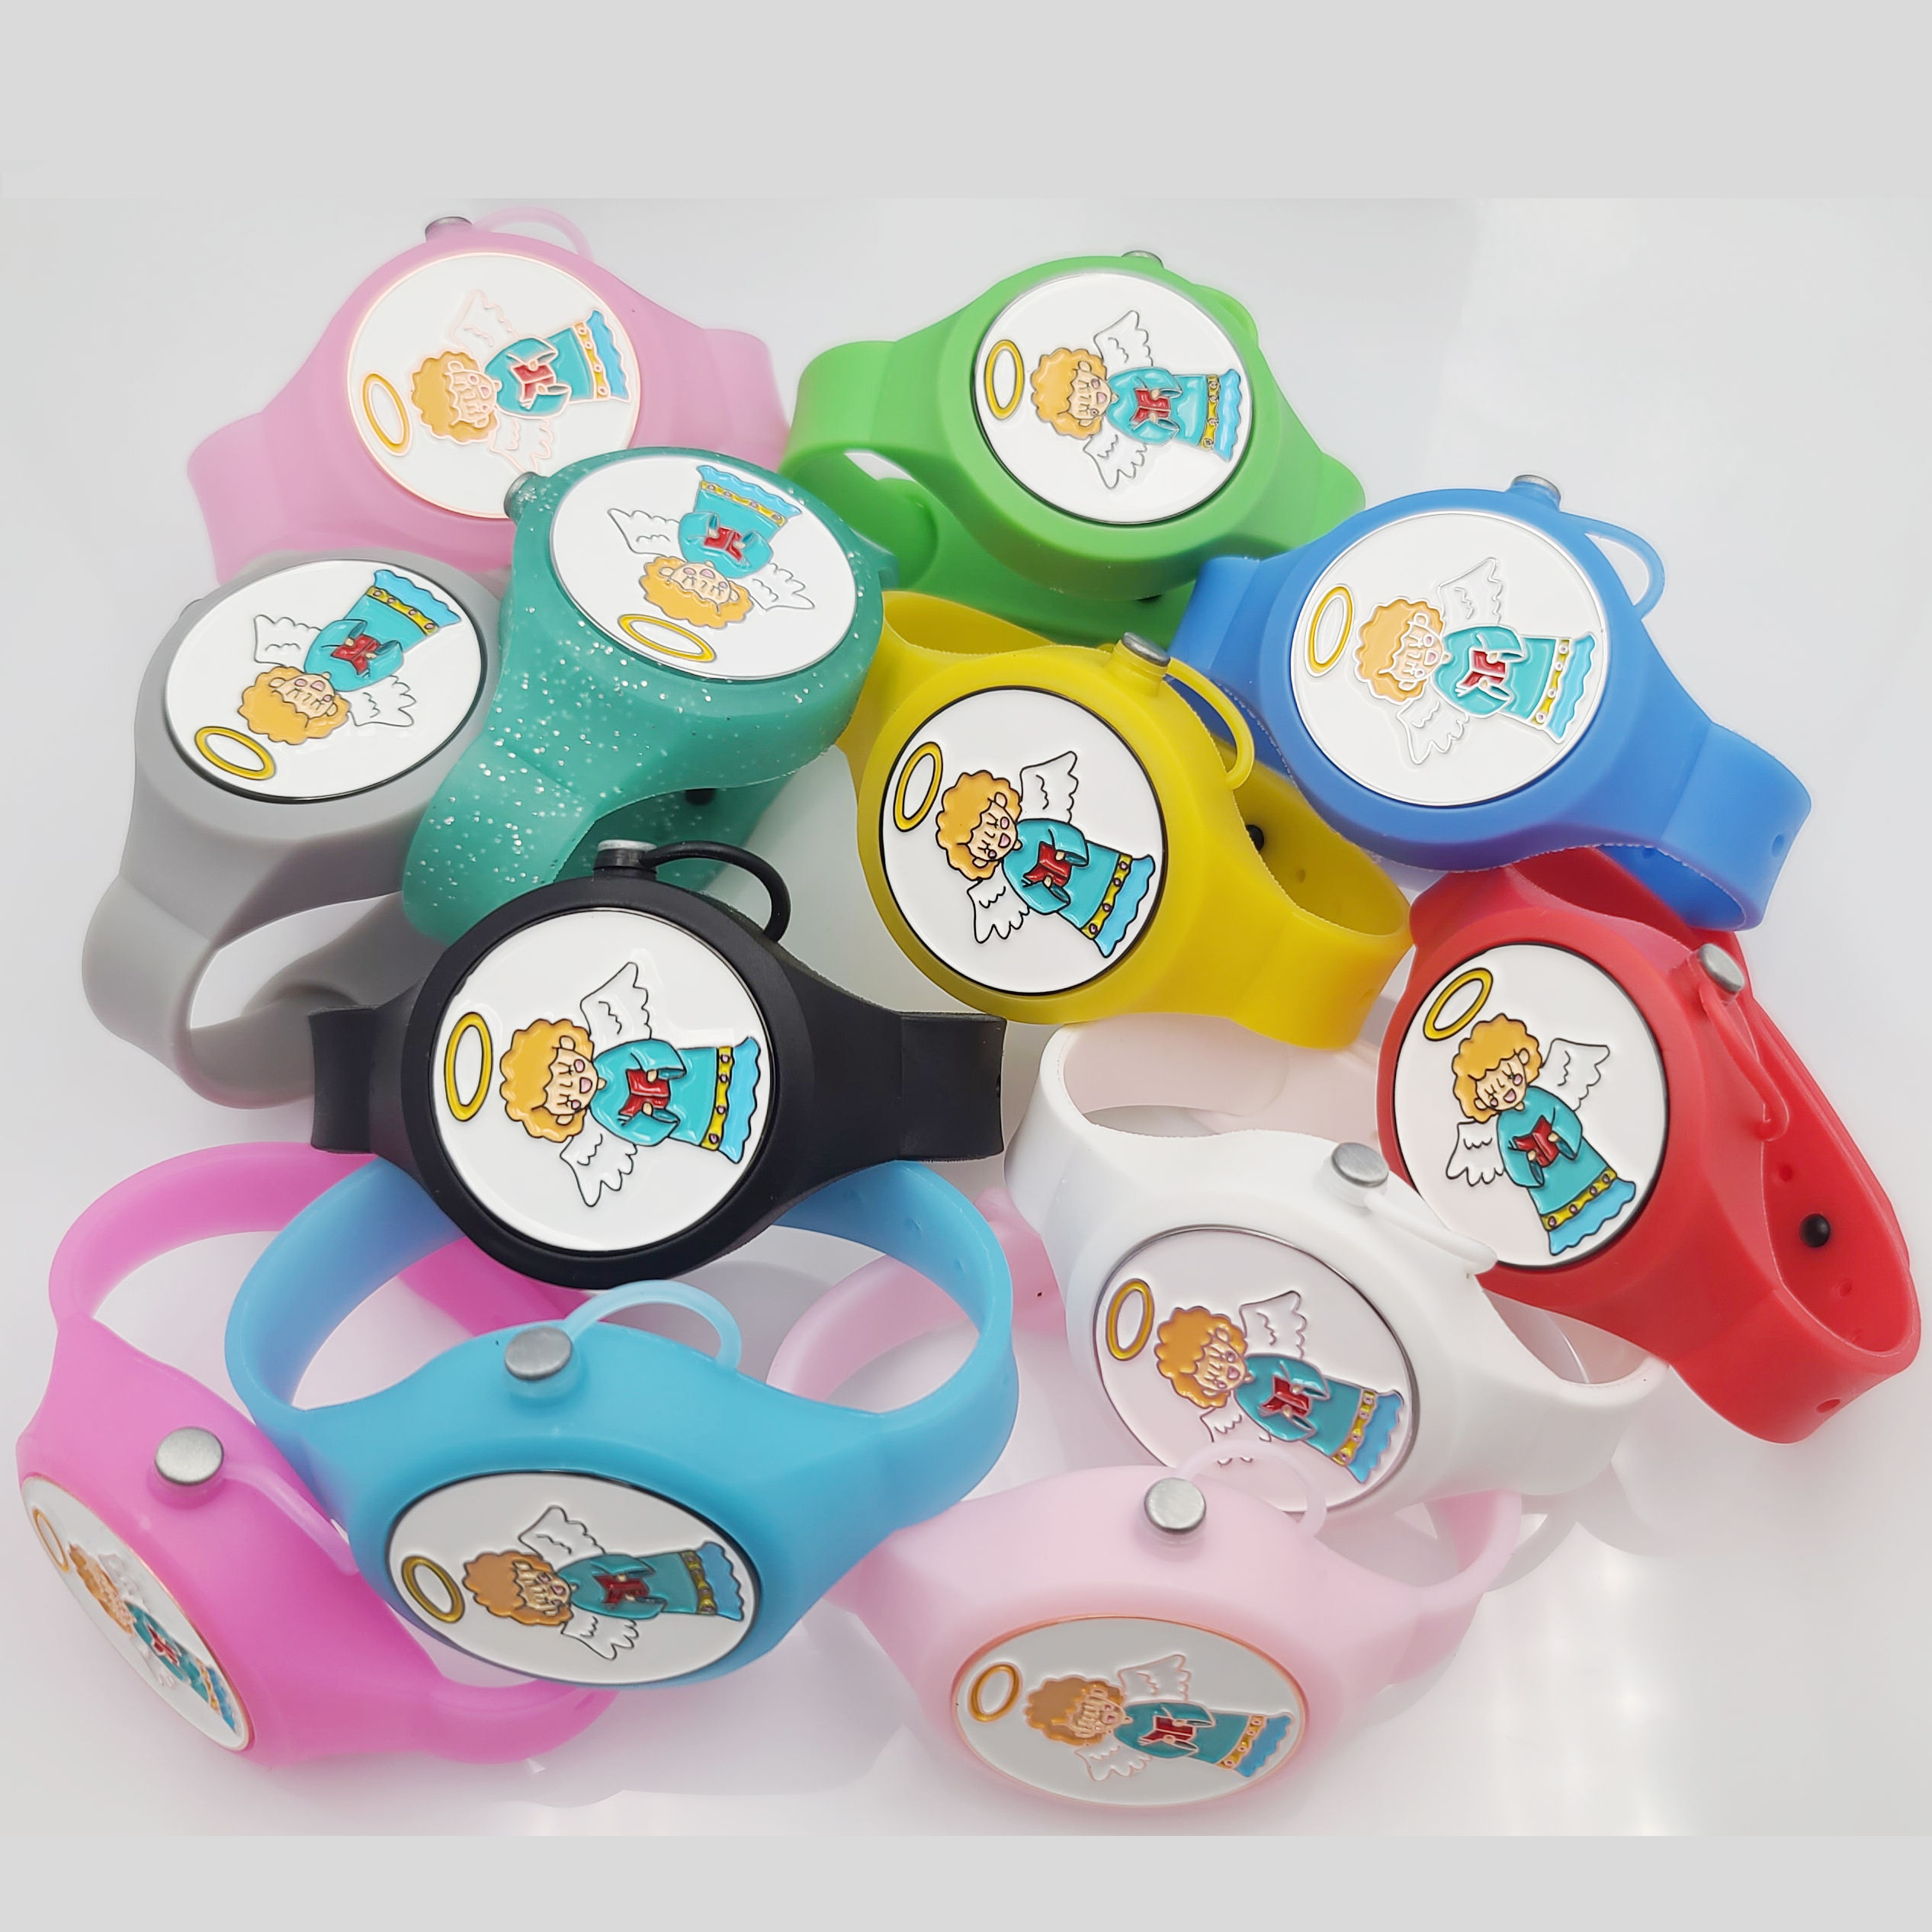 New Product Ideas 2021 Creative Portable Gel Holder Wrap Hand Sanitizer Silicone Bracelet For Adult Youth Kids